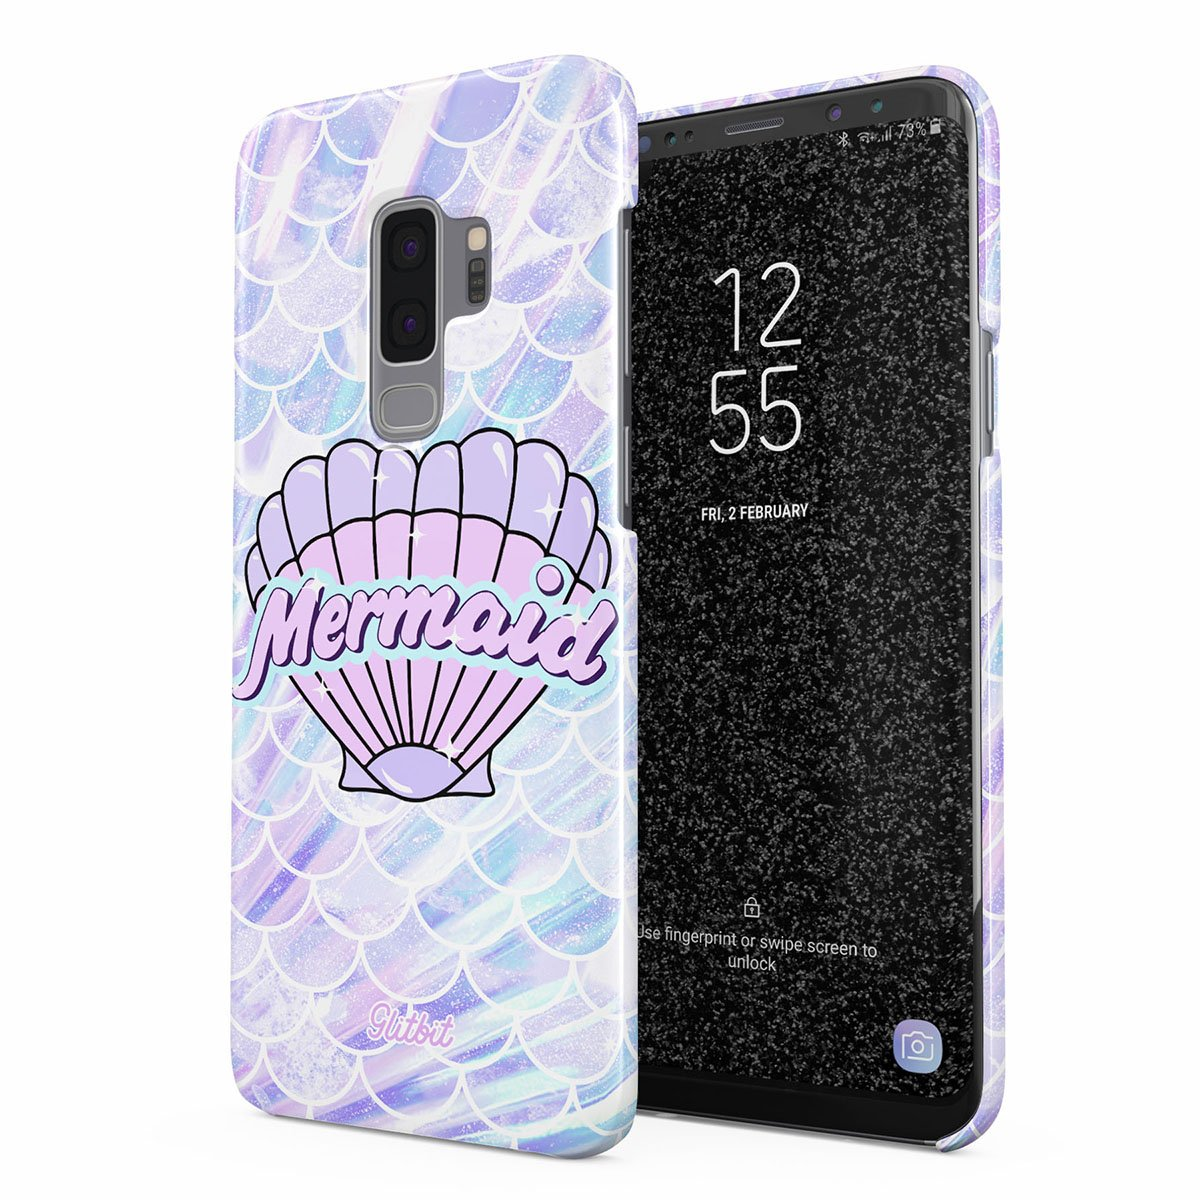 Glitbit Compatible with Samsung Galaxy S9 Plus Case Mermaid Seashell Paua Abalone Queen Princess Ocean Sea Holographic Purple Aesthetic Thin Design Durable Hard Shell Plastic Protective Case Cover by Glitbit